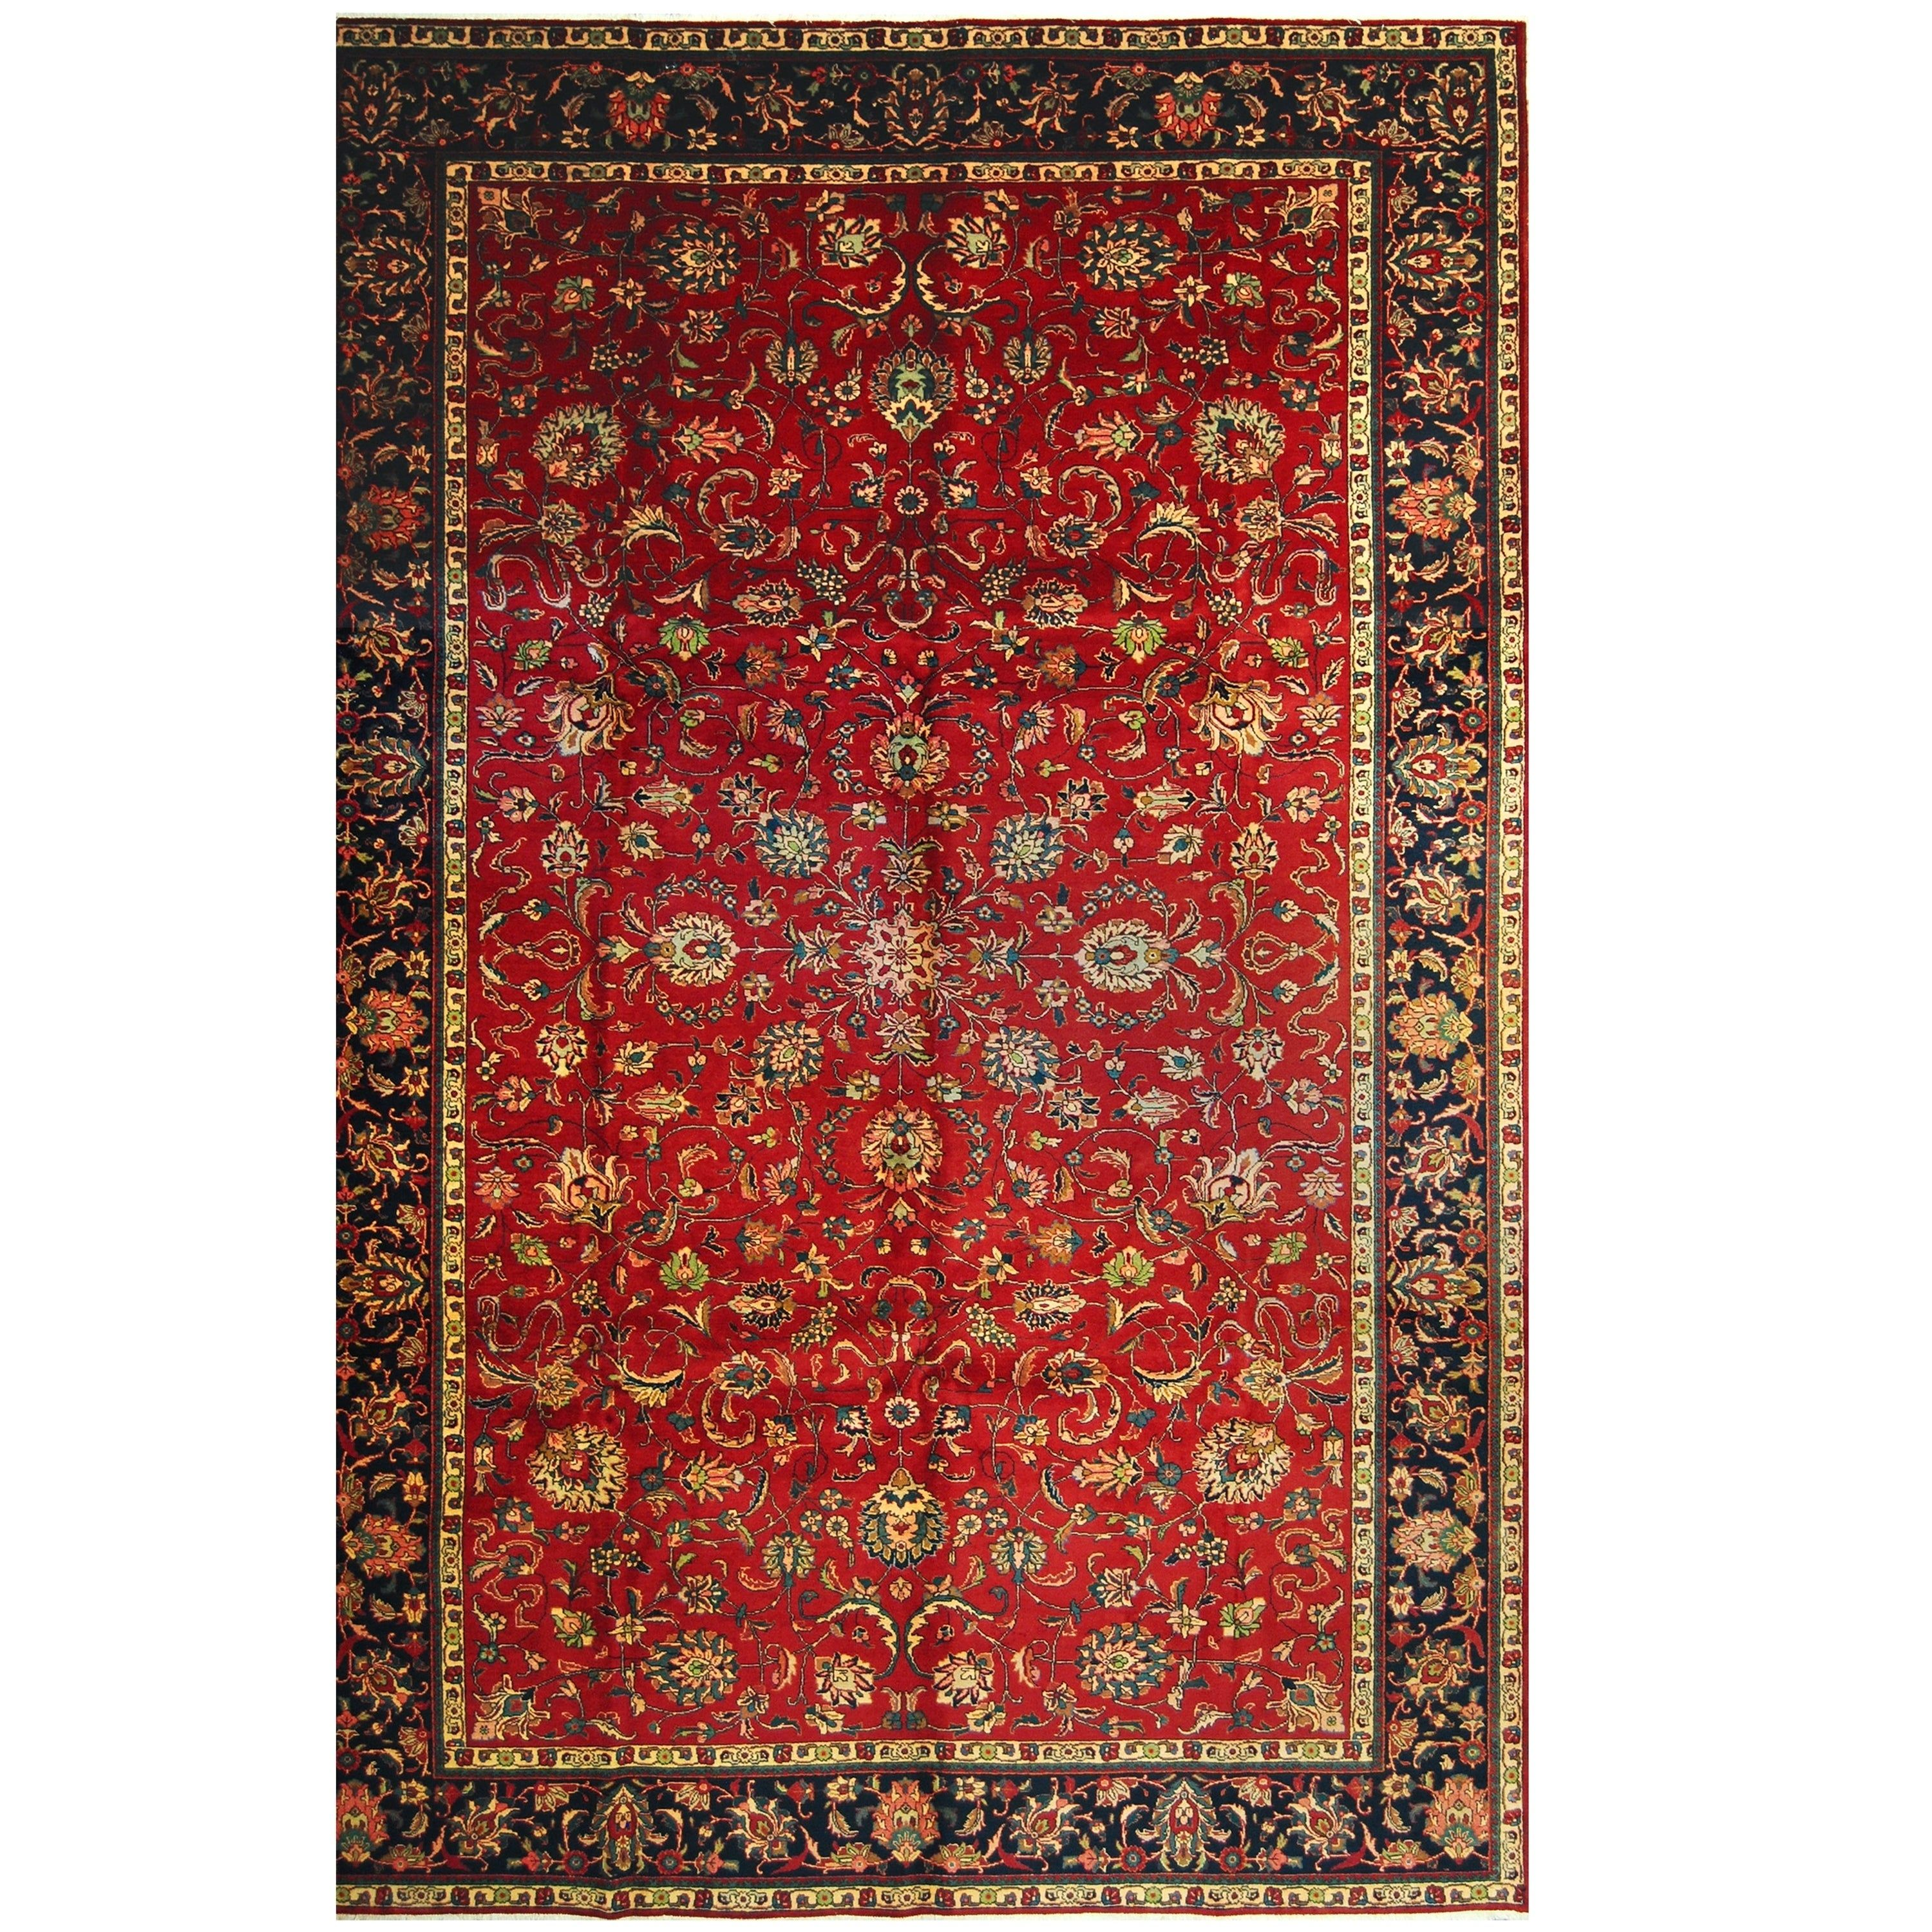 Handmade Herat Oriental Persian Hand Knotted Tabriz Wool Rug 10 X 15 4 10 X 15 4 Red Unique Rugs Colorful Rugs